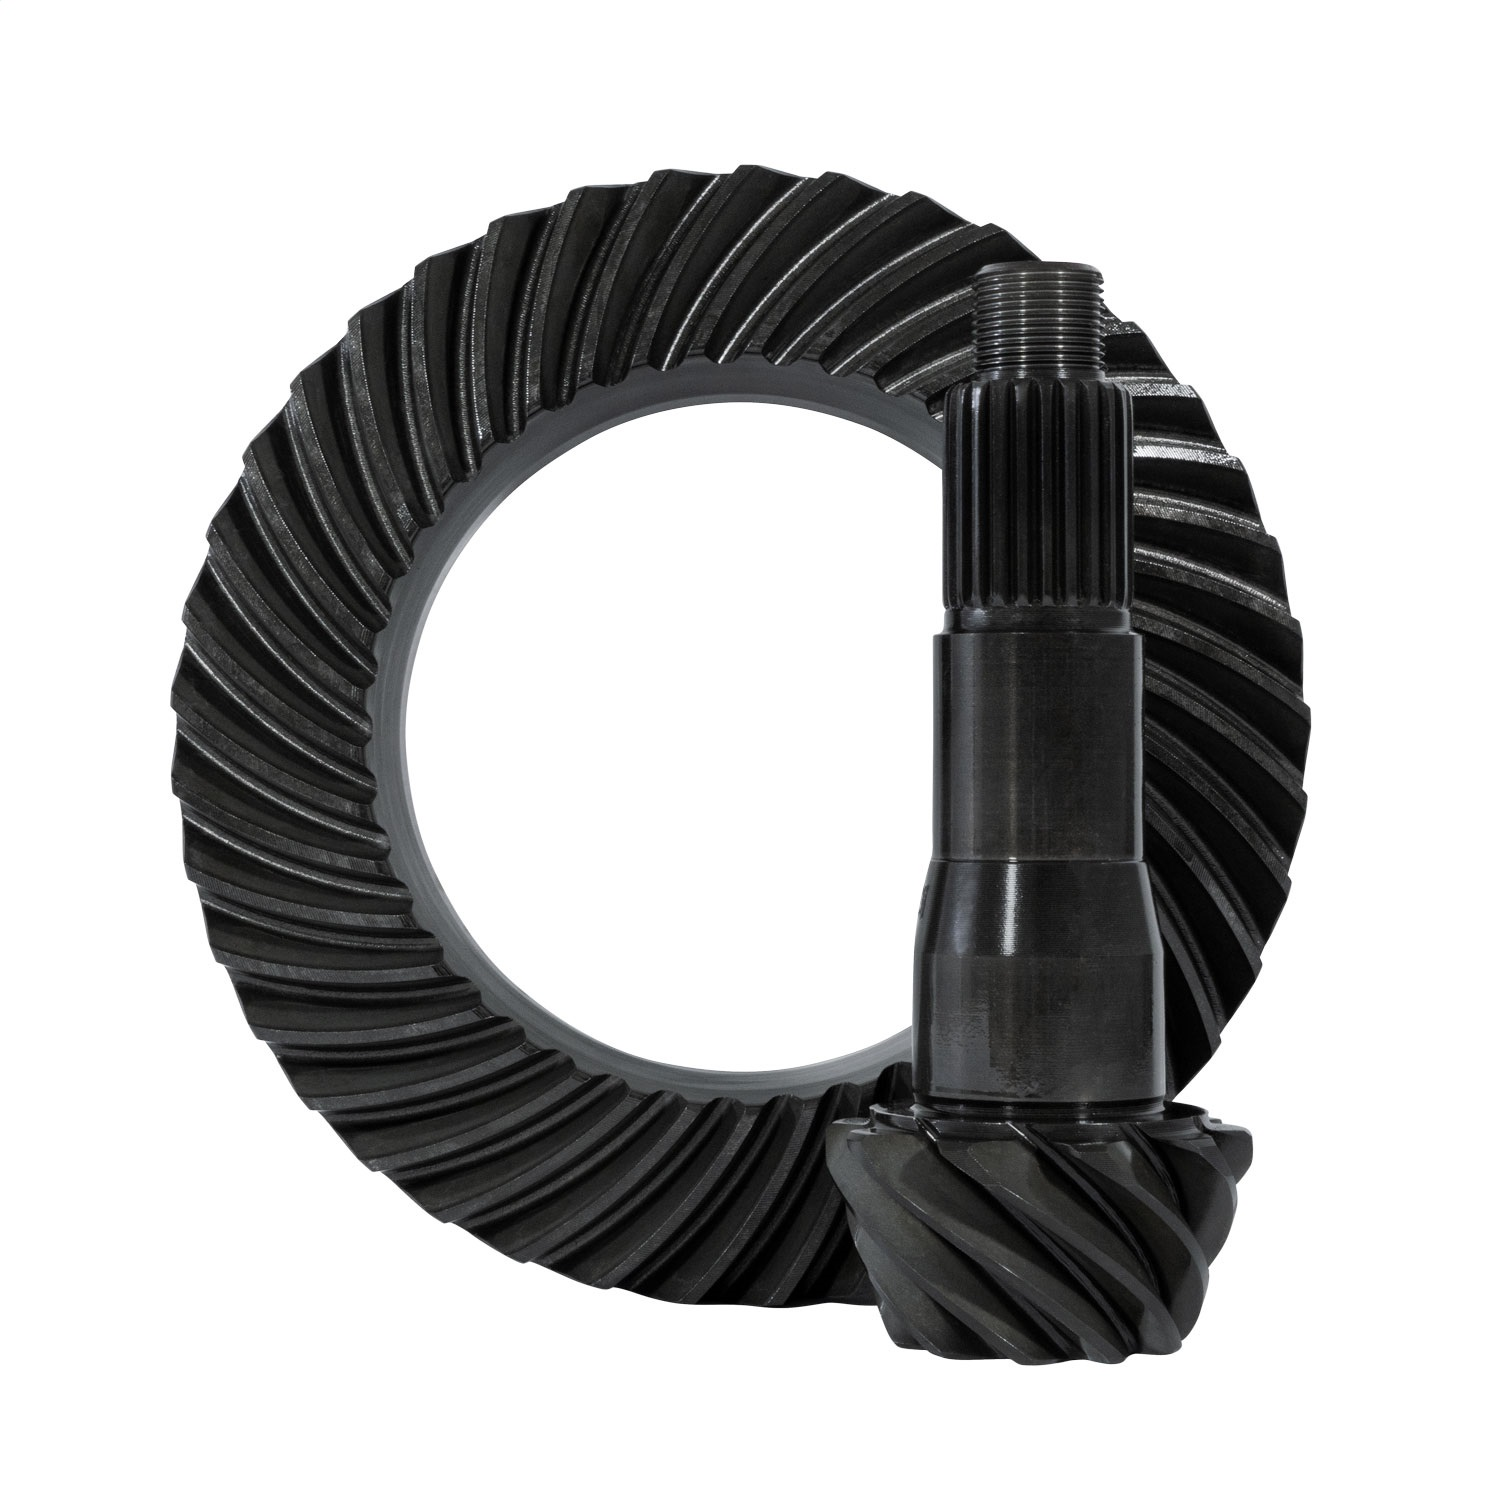 Yukon Gear & Axle YG D35JL-373 Differential Ring and Pinion Fits Wrangler (JL)